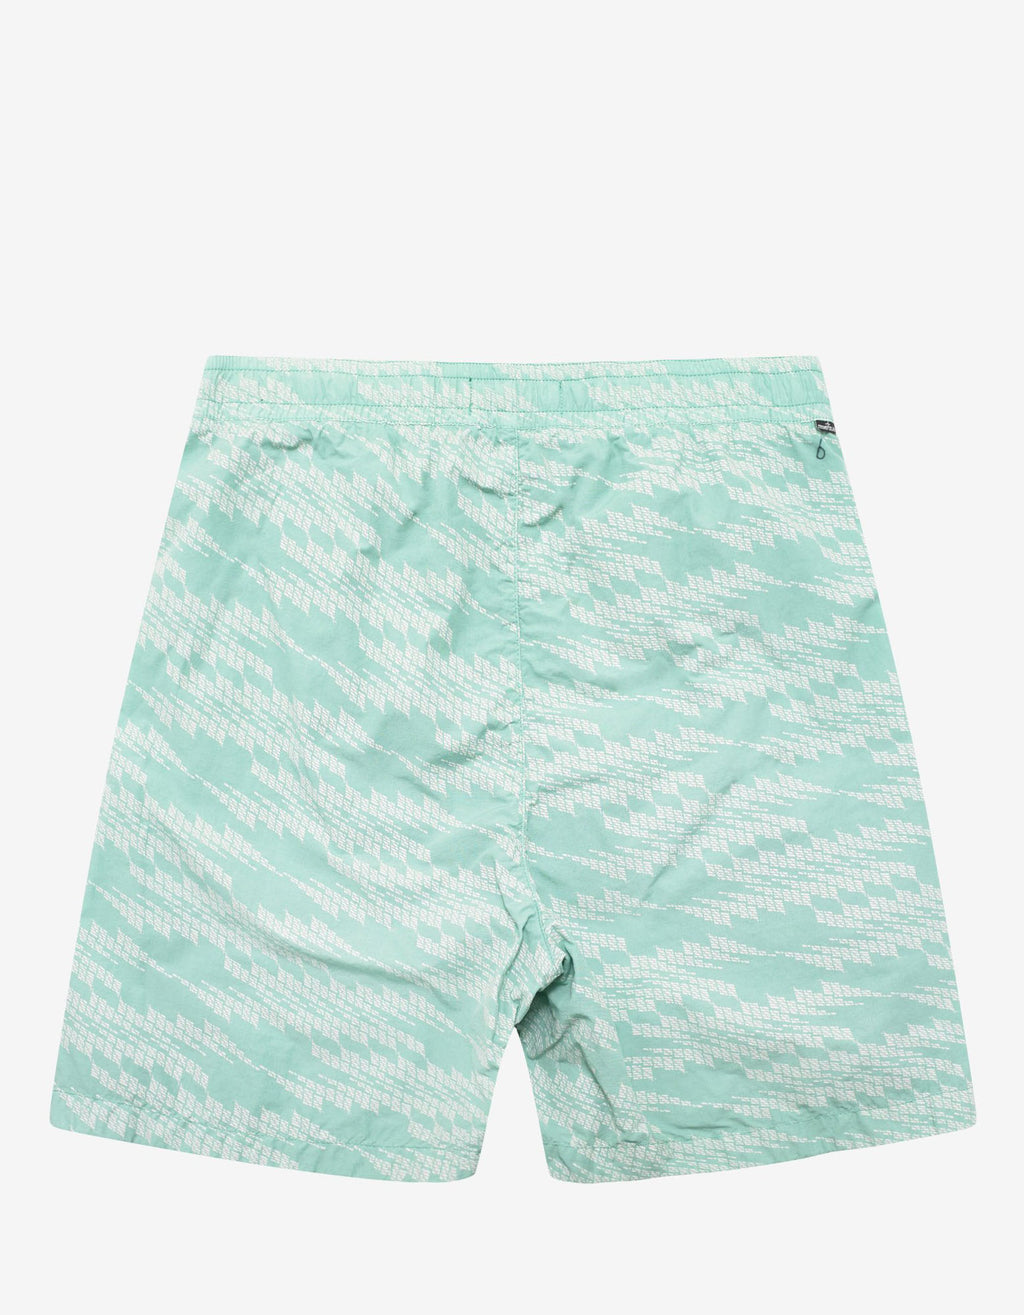 Turquoise Glitch Print Swim Shorts